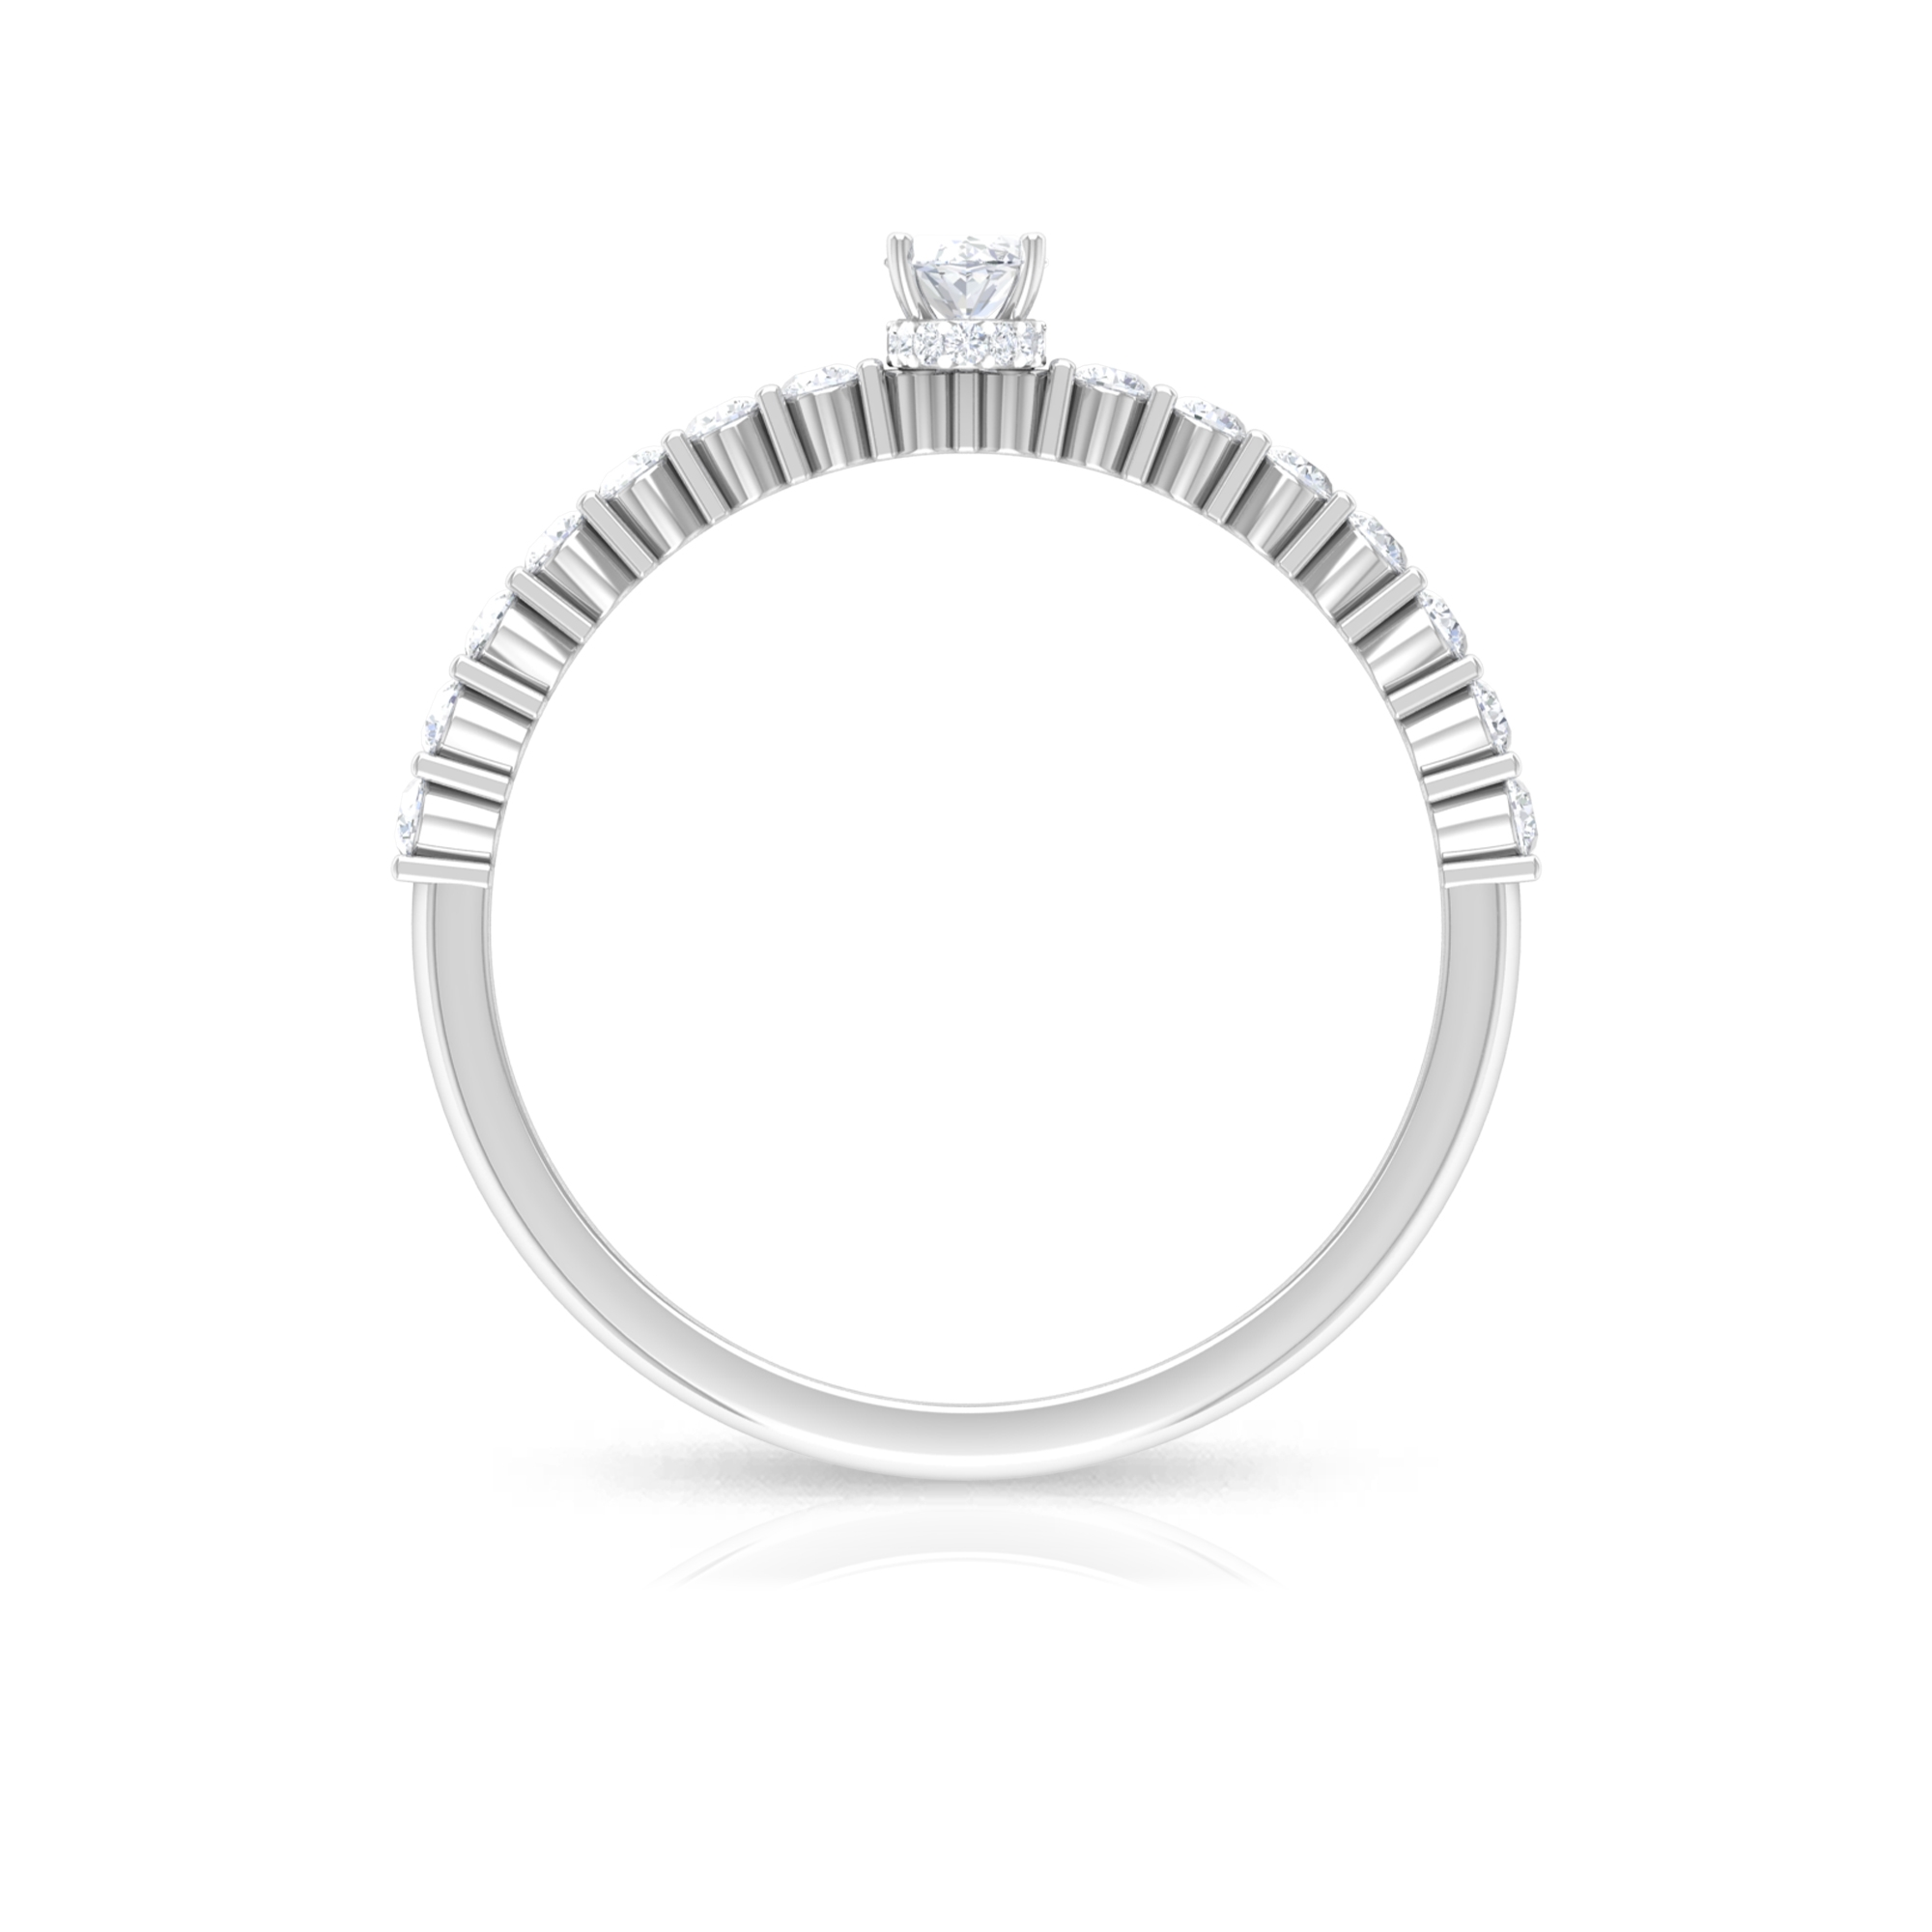 1/2 CT Oval Shape Solitaire Diamond Ring in Hidden Halo with Bar Set Diamond